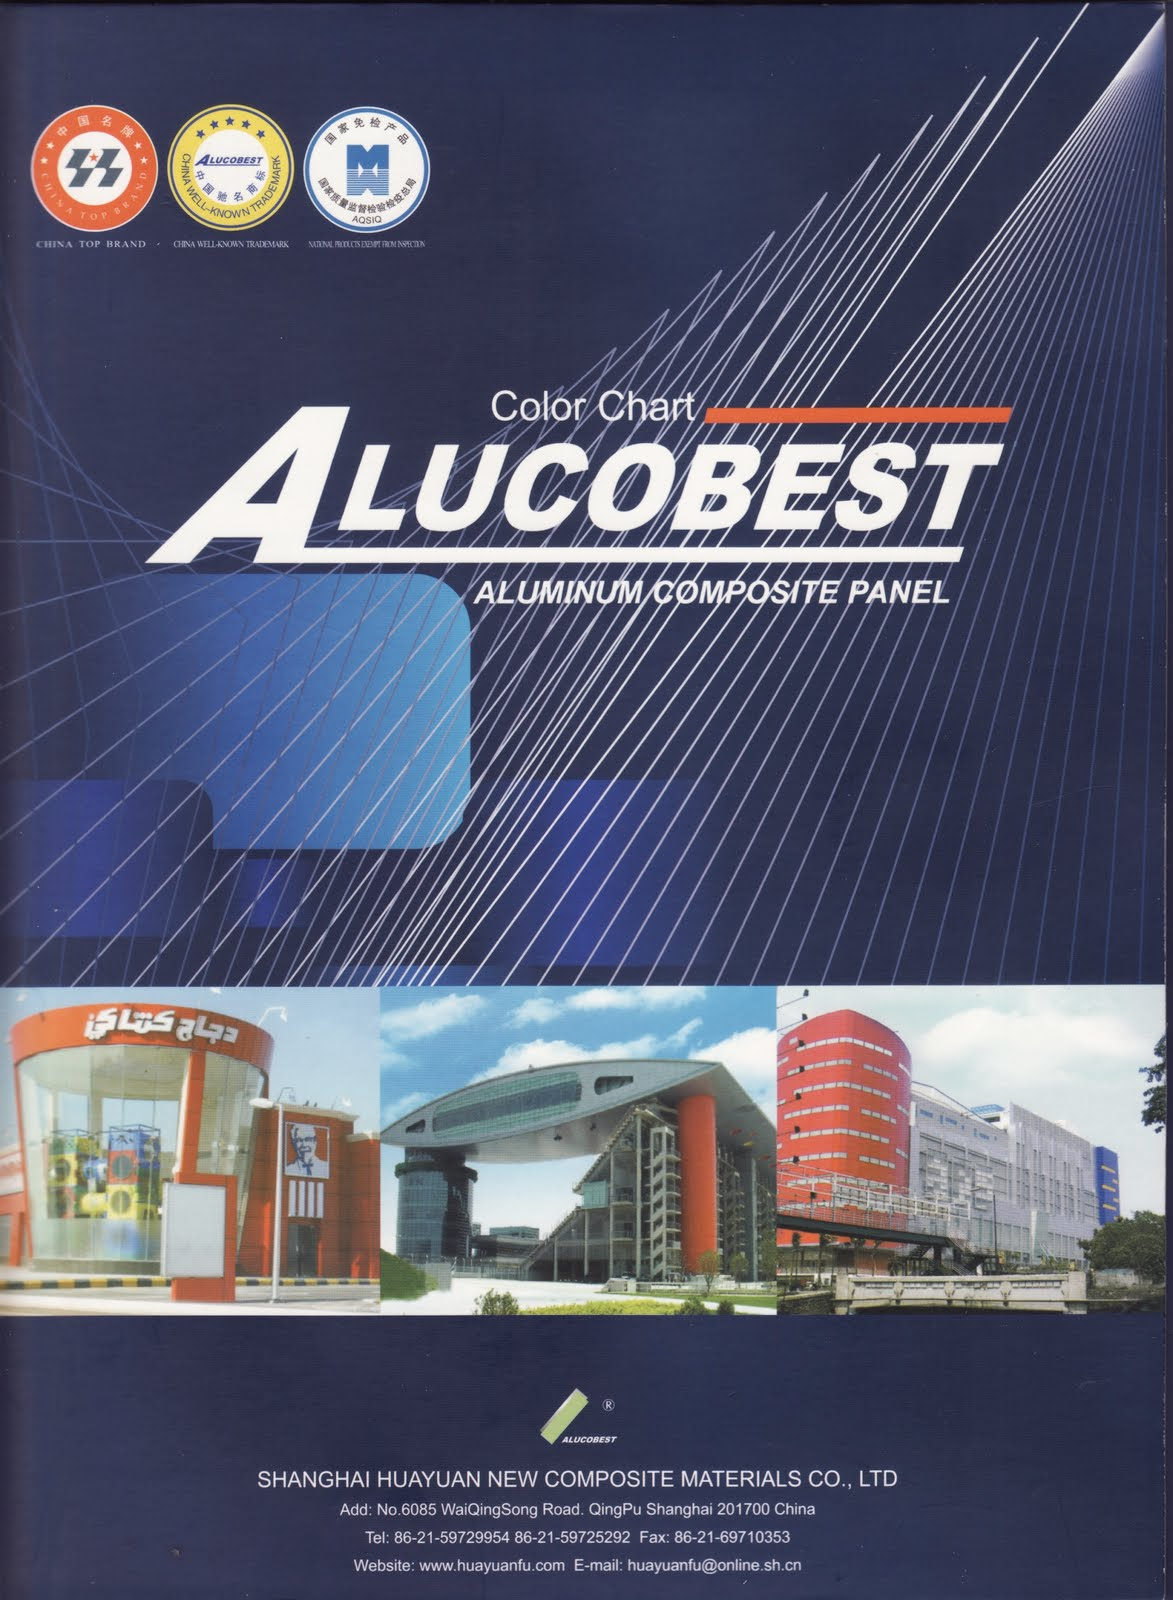 Alucobest Aluminum Composite Panel New Color Chart